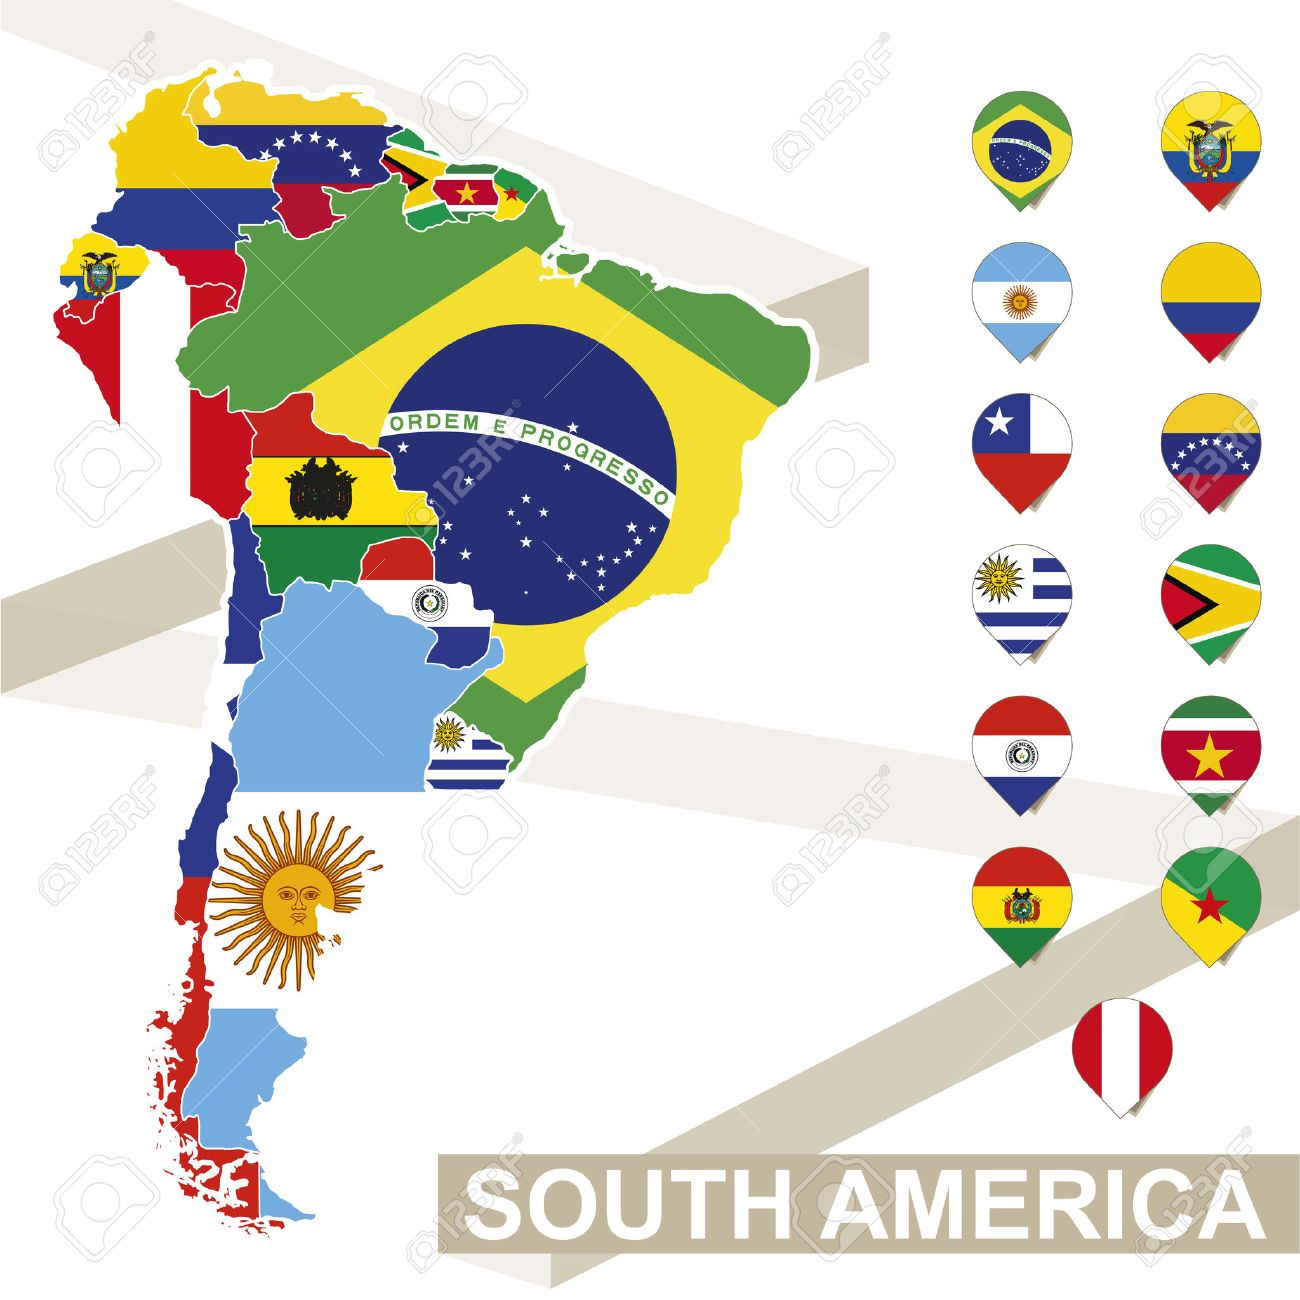 South America map with flags, South America map colored in with their flag. Vector Illustration. - 54207317